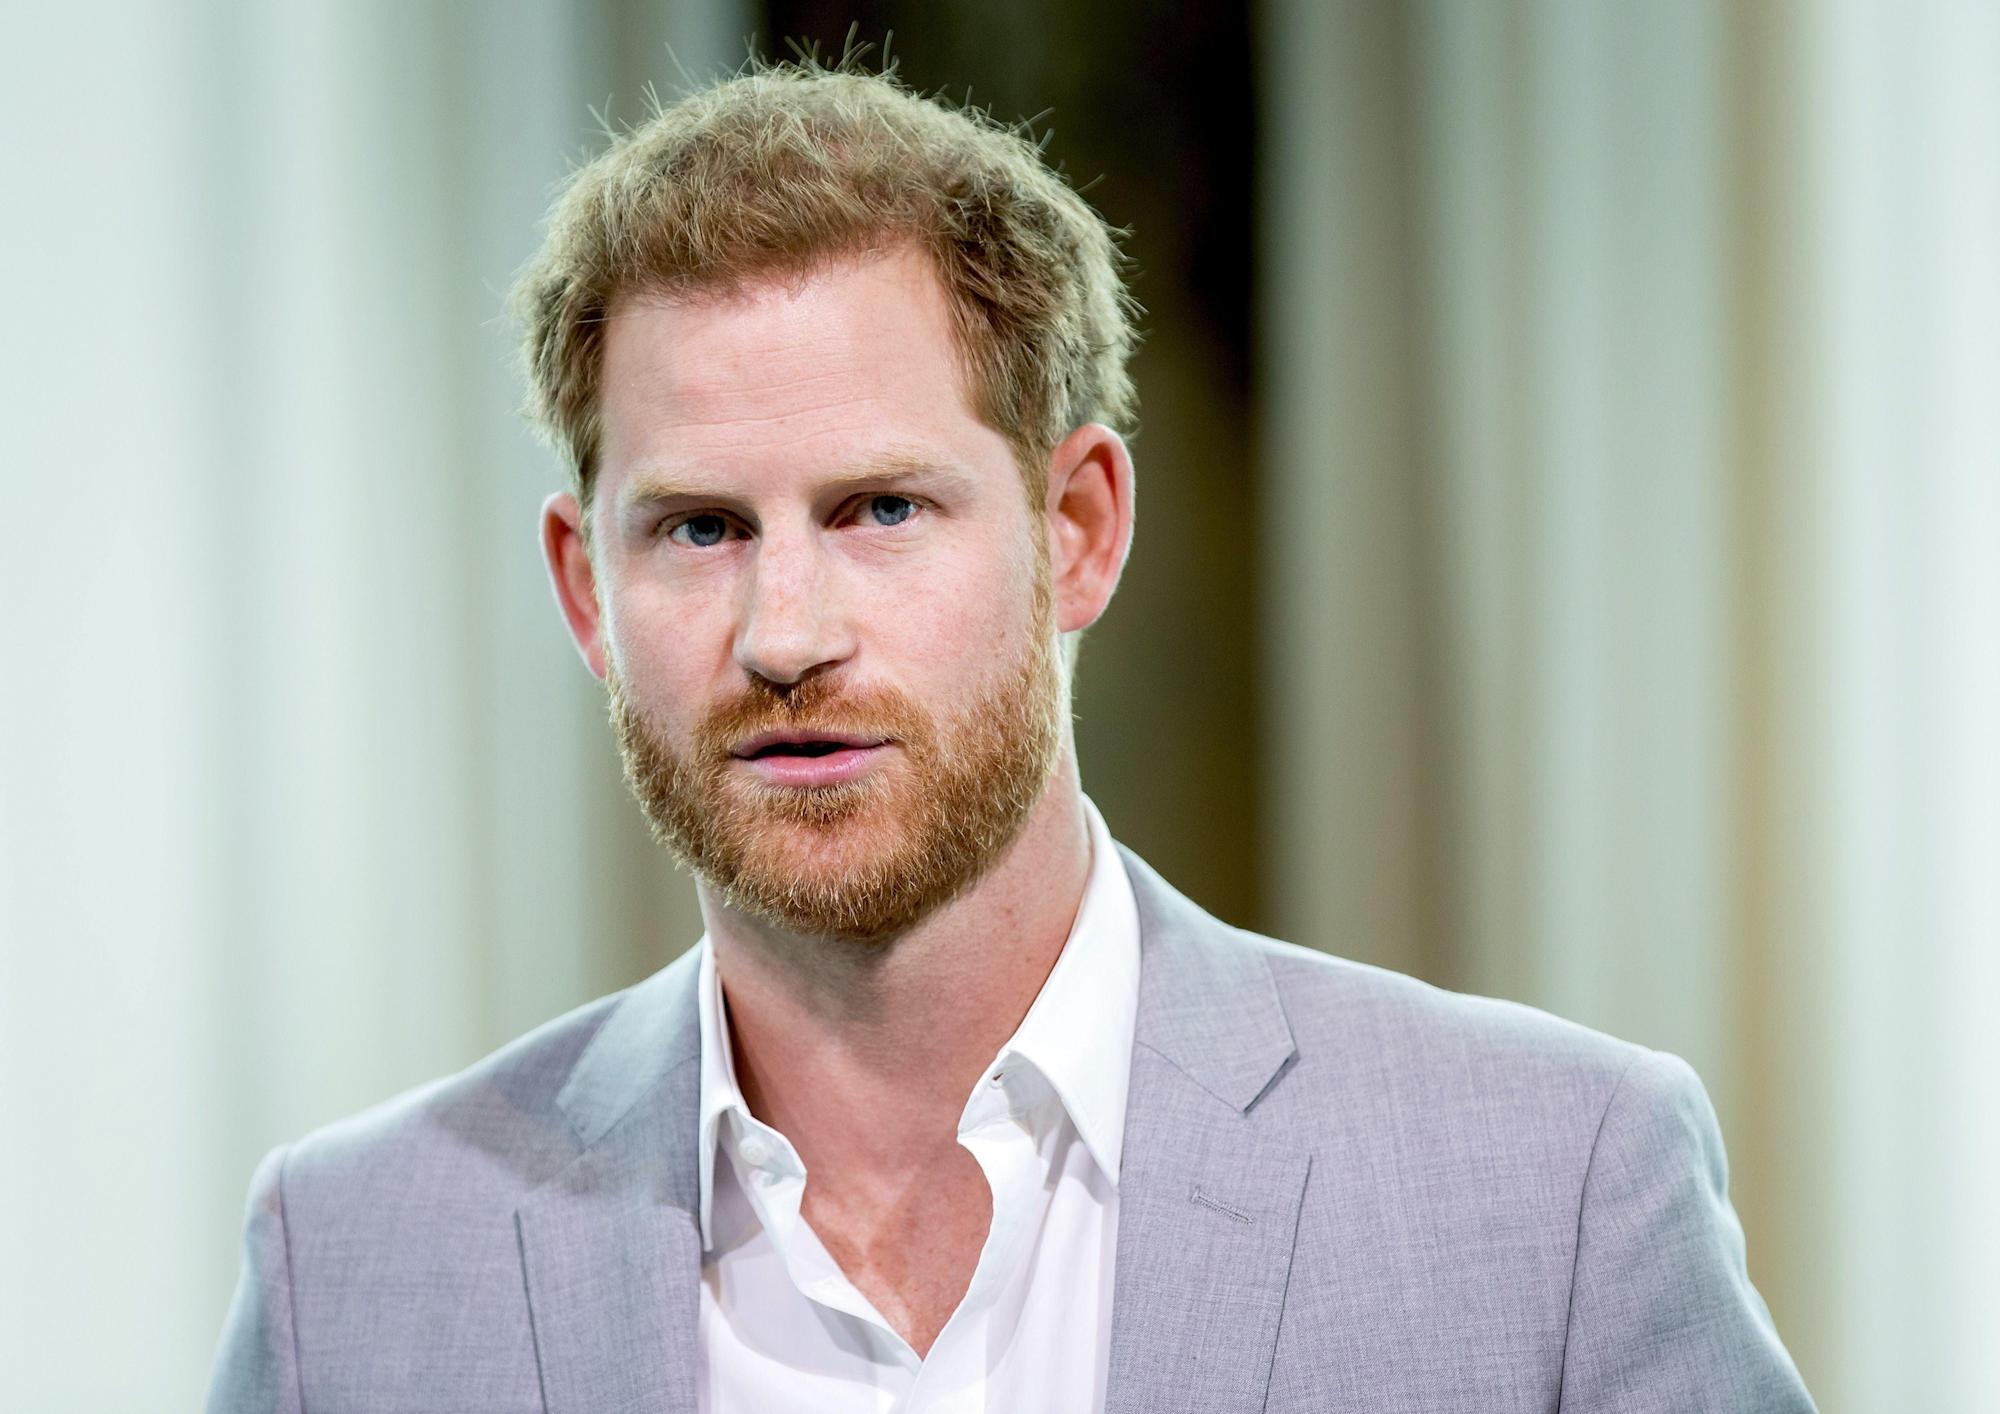 'You've got to be f***ing joking': How the world reacted to news of Prince Harry's memoir